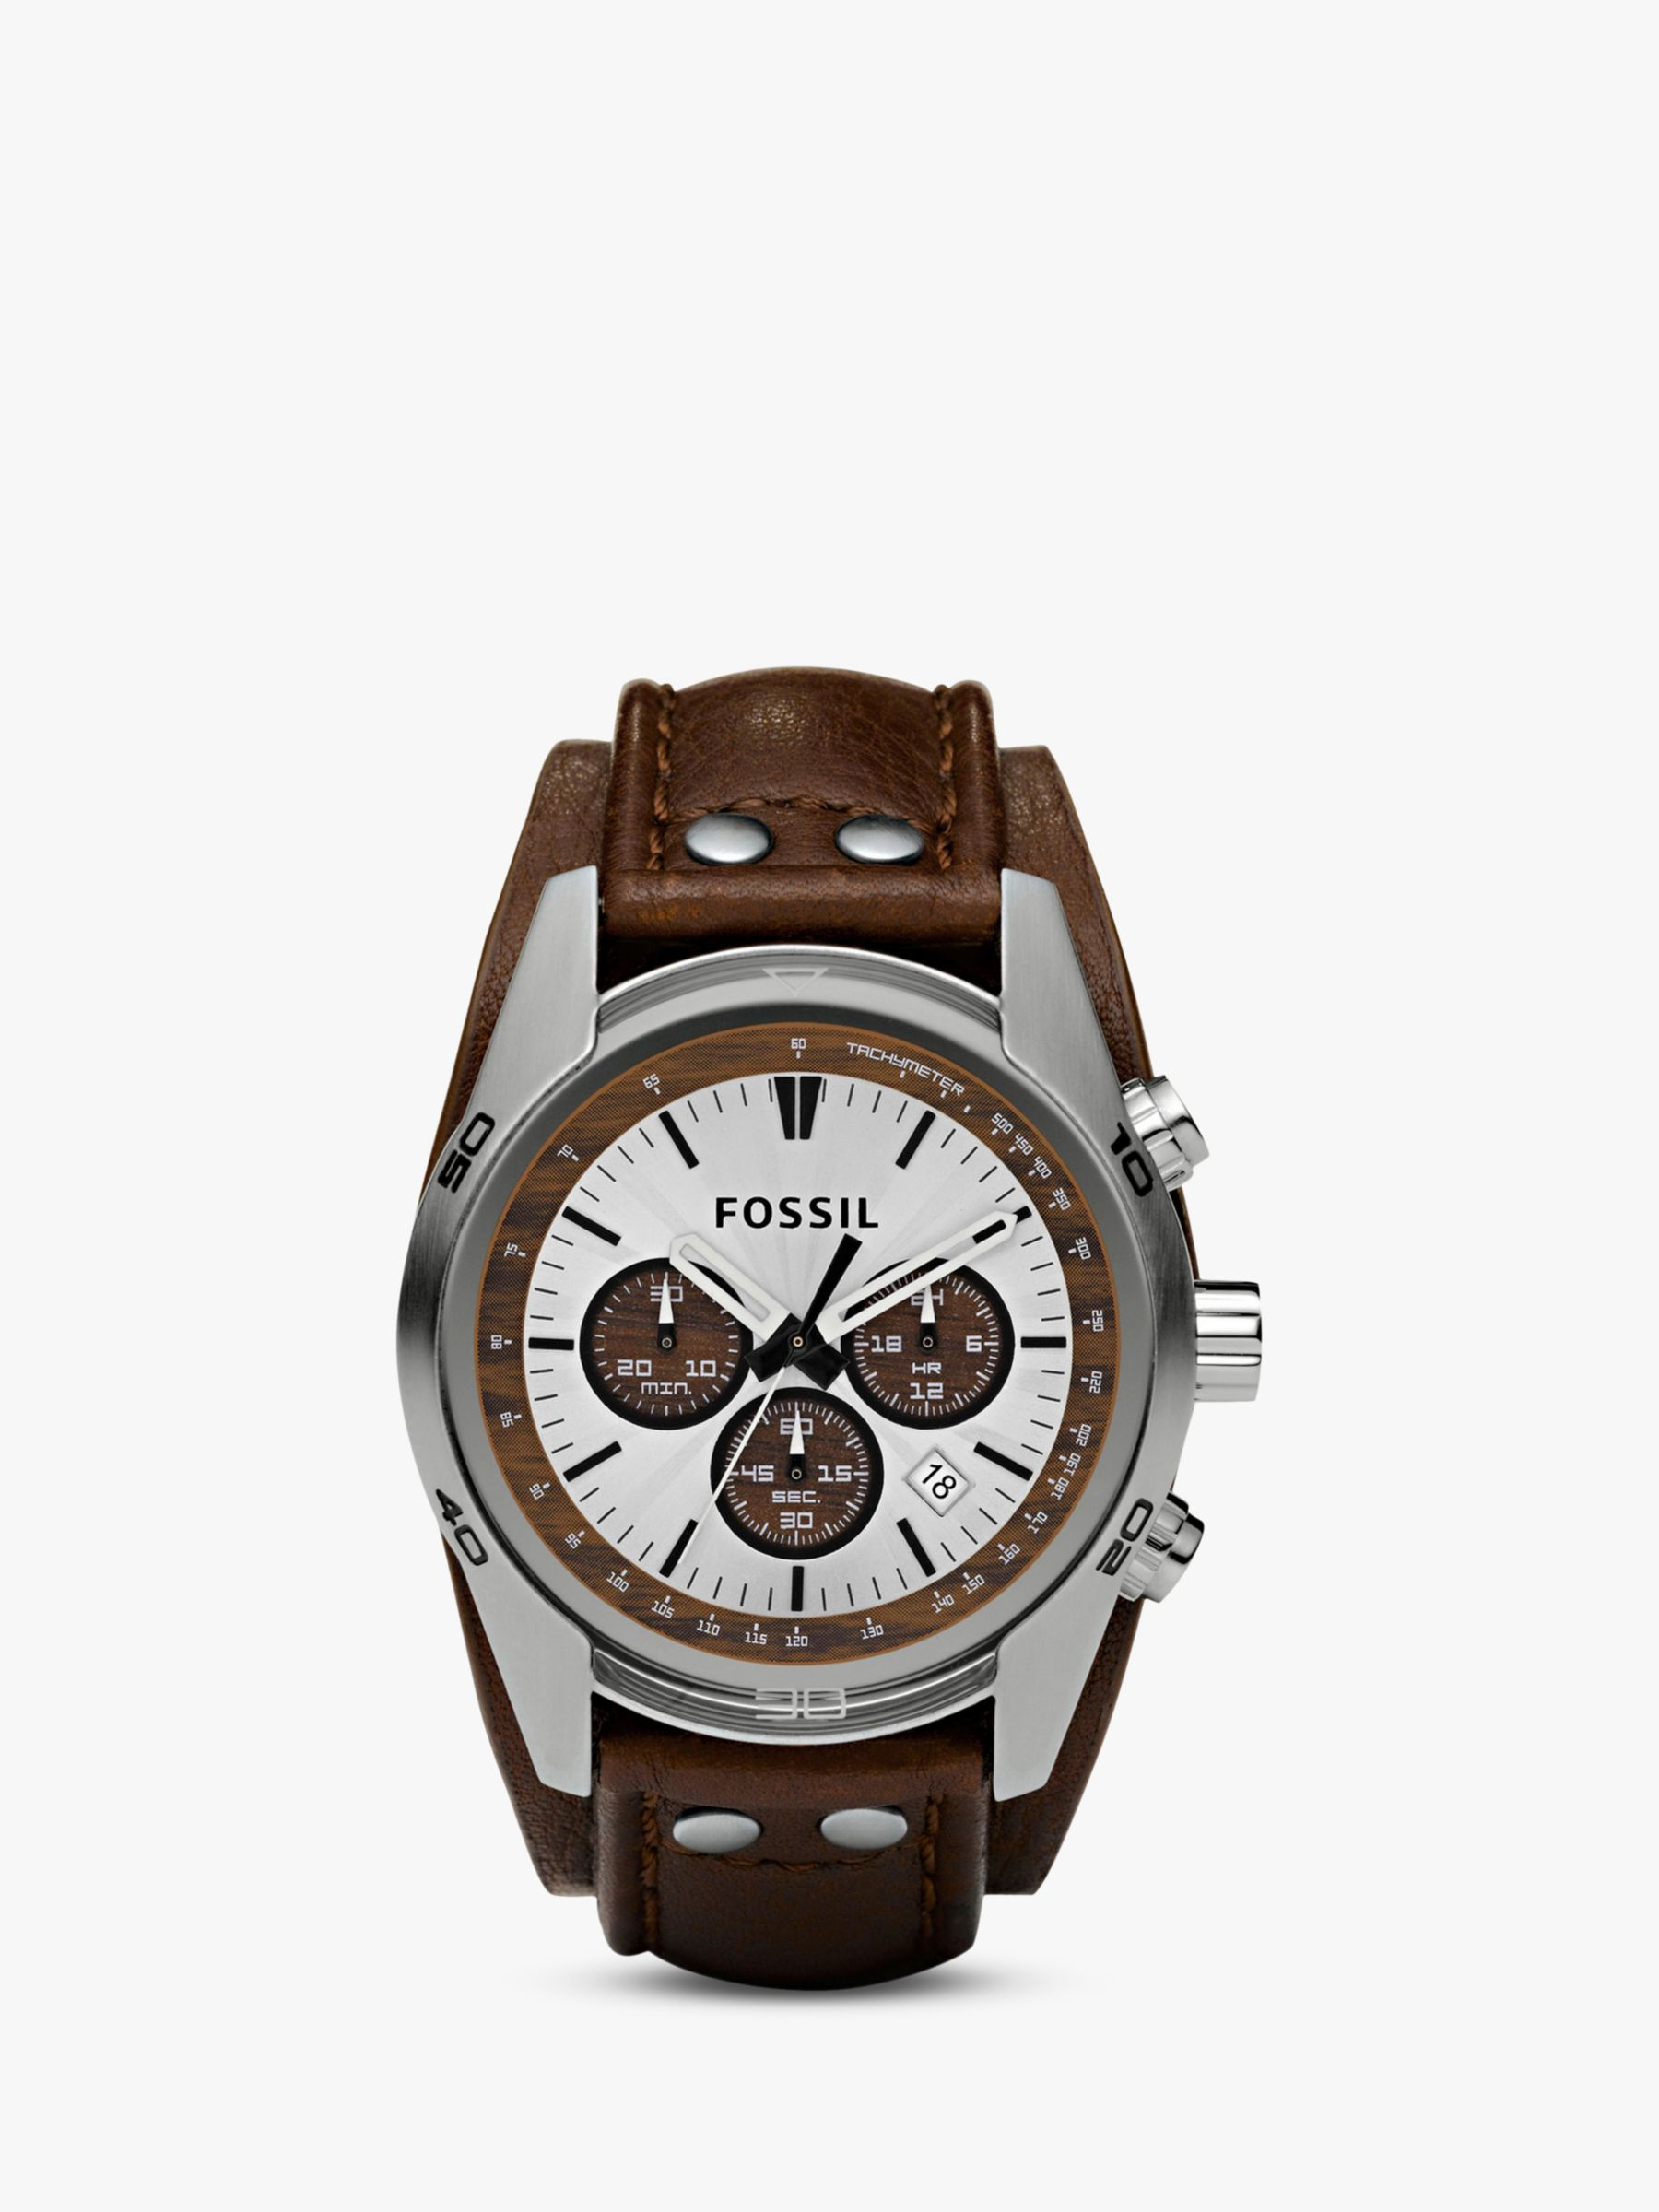 Fossil Fossil CH2565 Men's Coachman Chronograph Leather Strap Watch, Brown/White